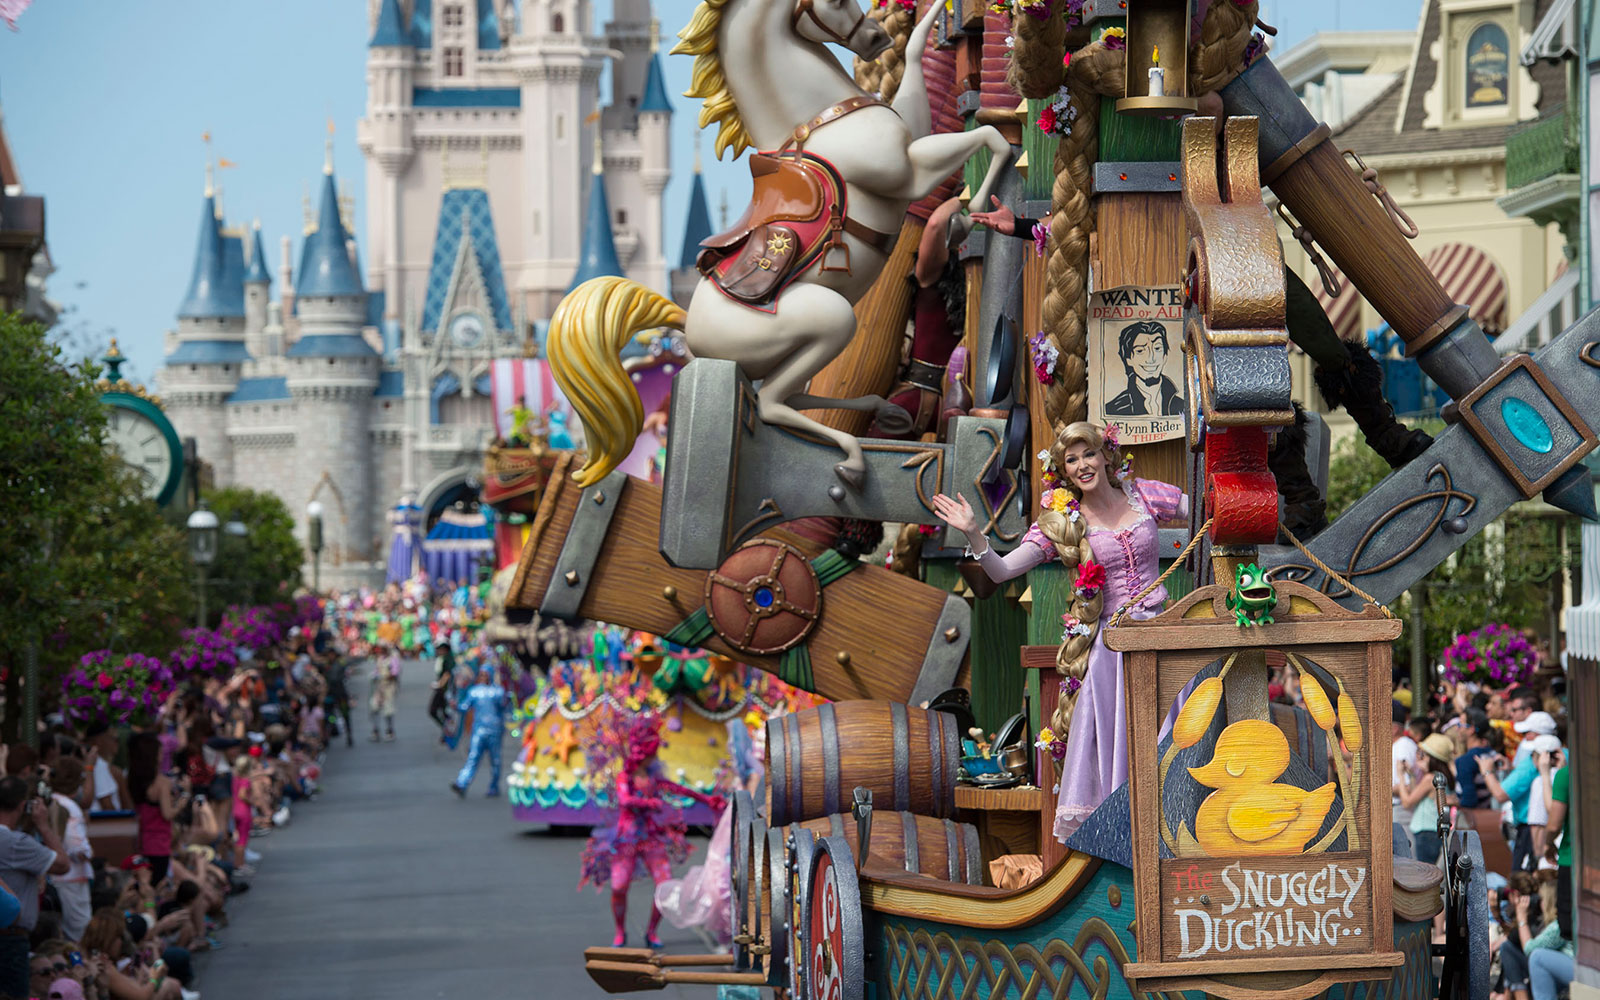 Things You Didn't Know About Disney Parks: Parade Technology